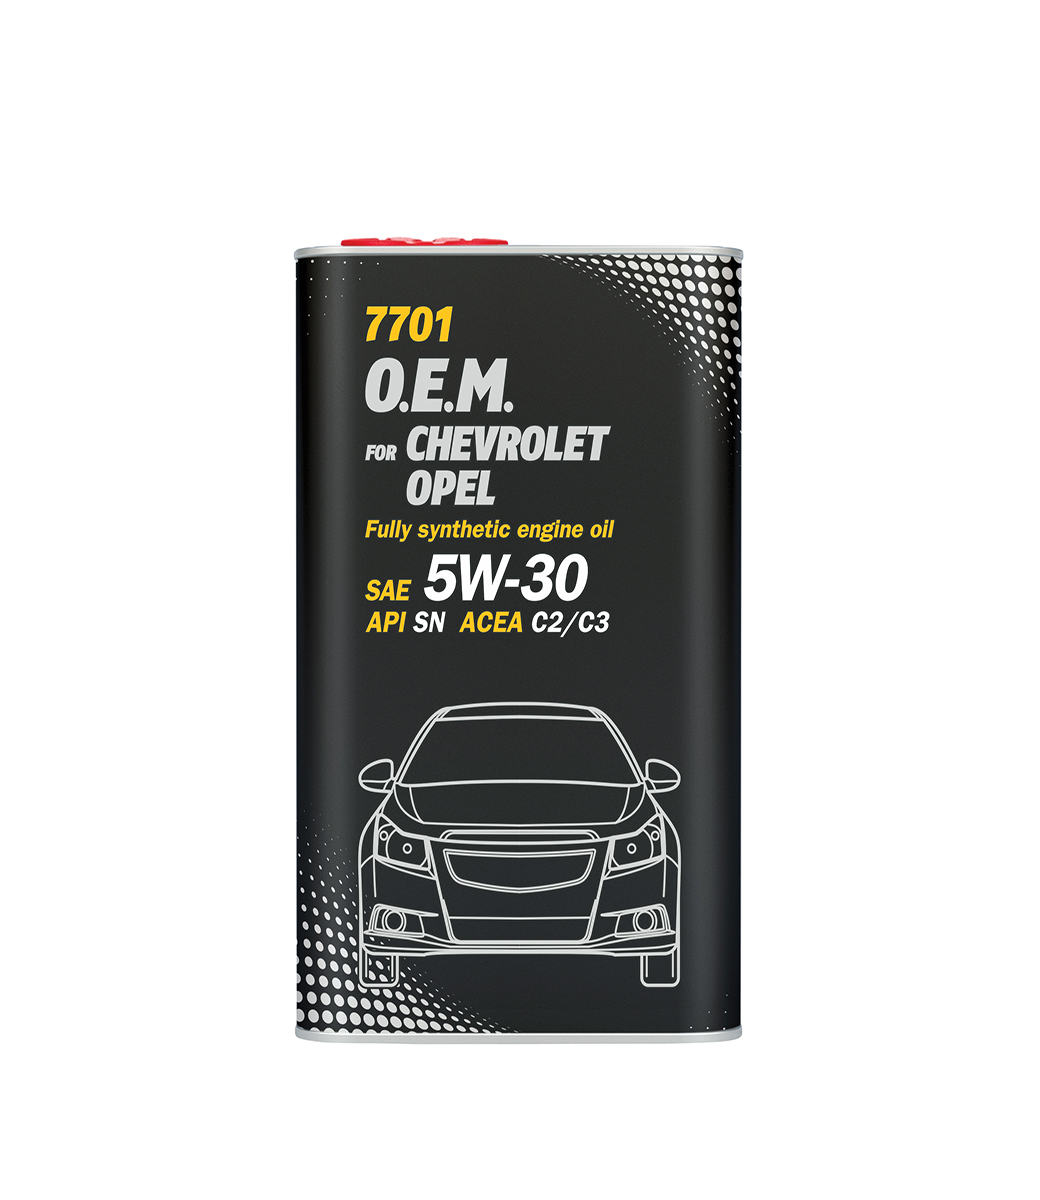 O.E.M. for Chevrolet Opel 5W-30